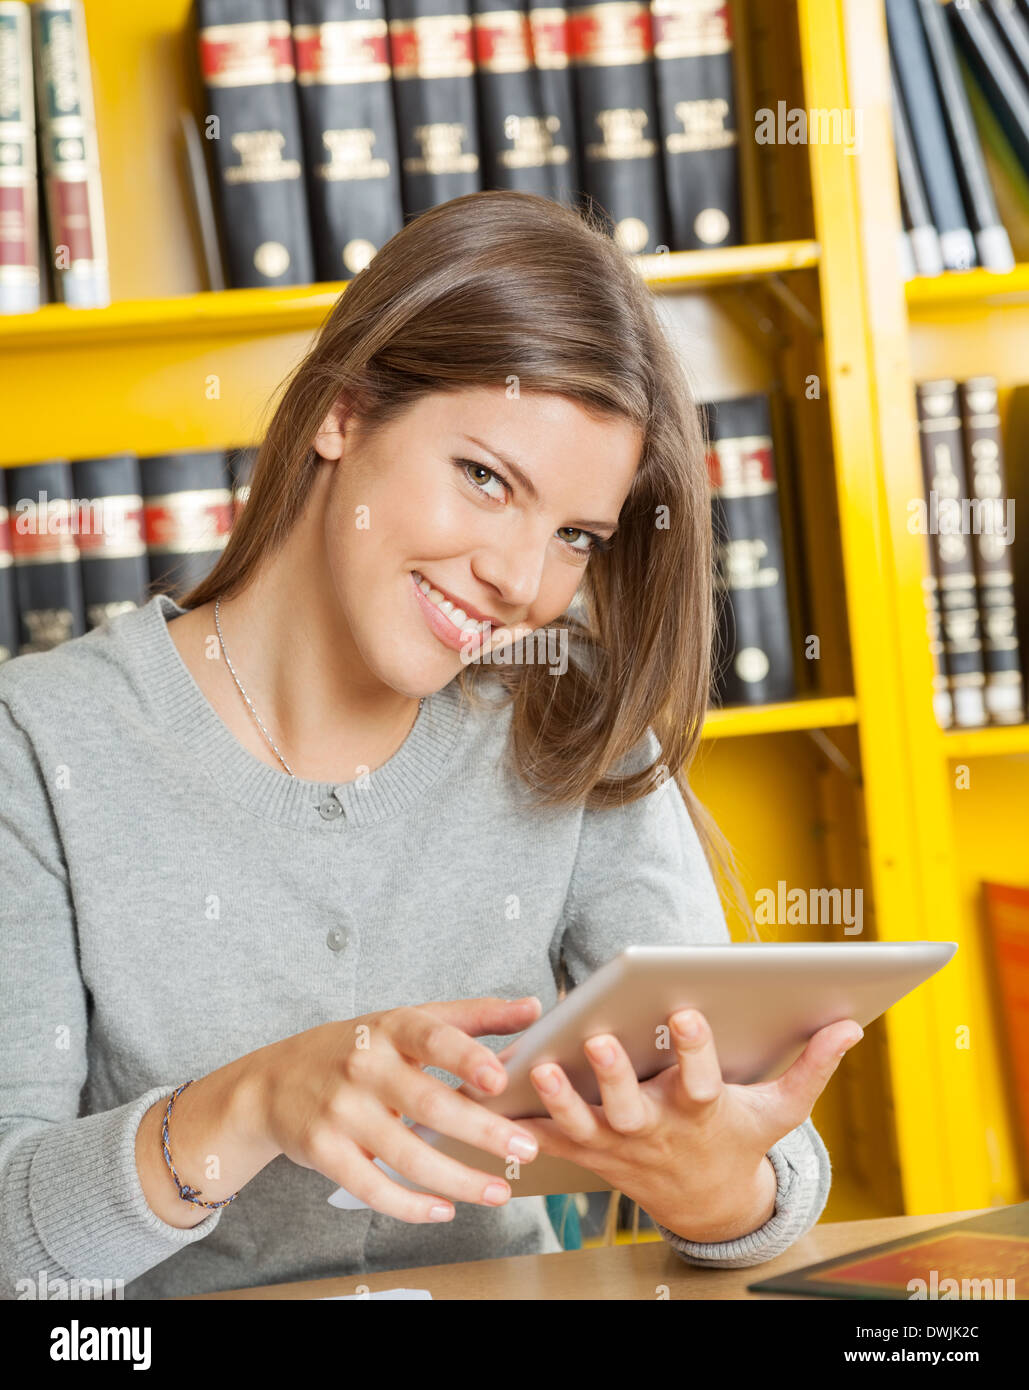 Woman With Digital Tablet Sitting Against Bookshelf In Library - Stock Image